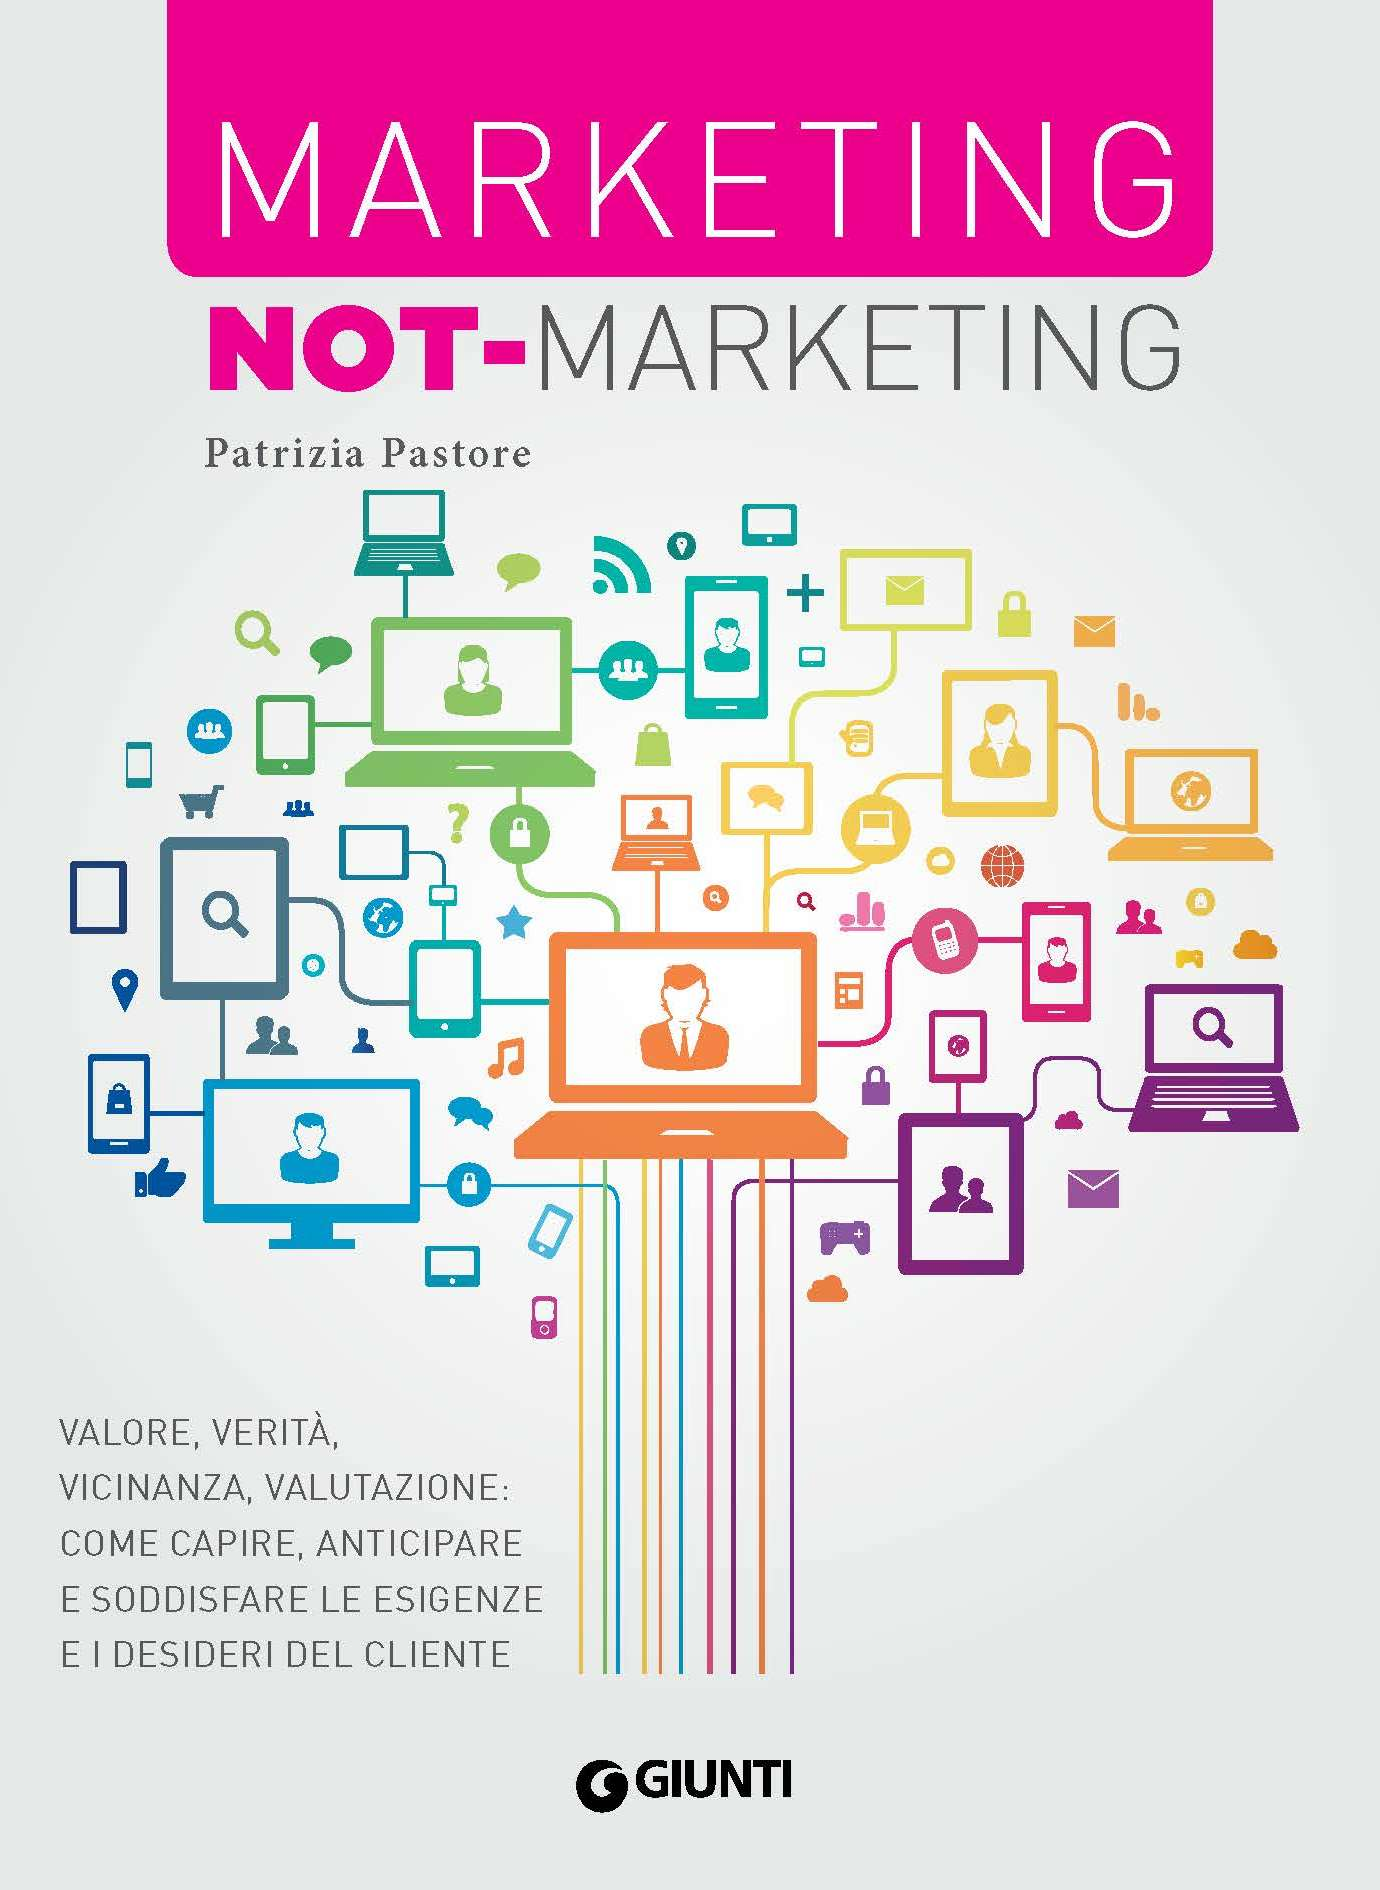 marketing not-marketing, not-marketing, marketing, non marketing